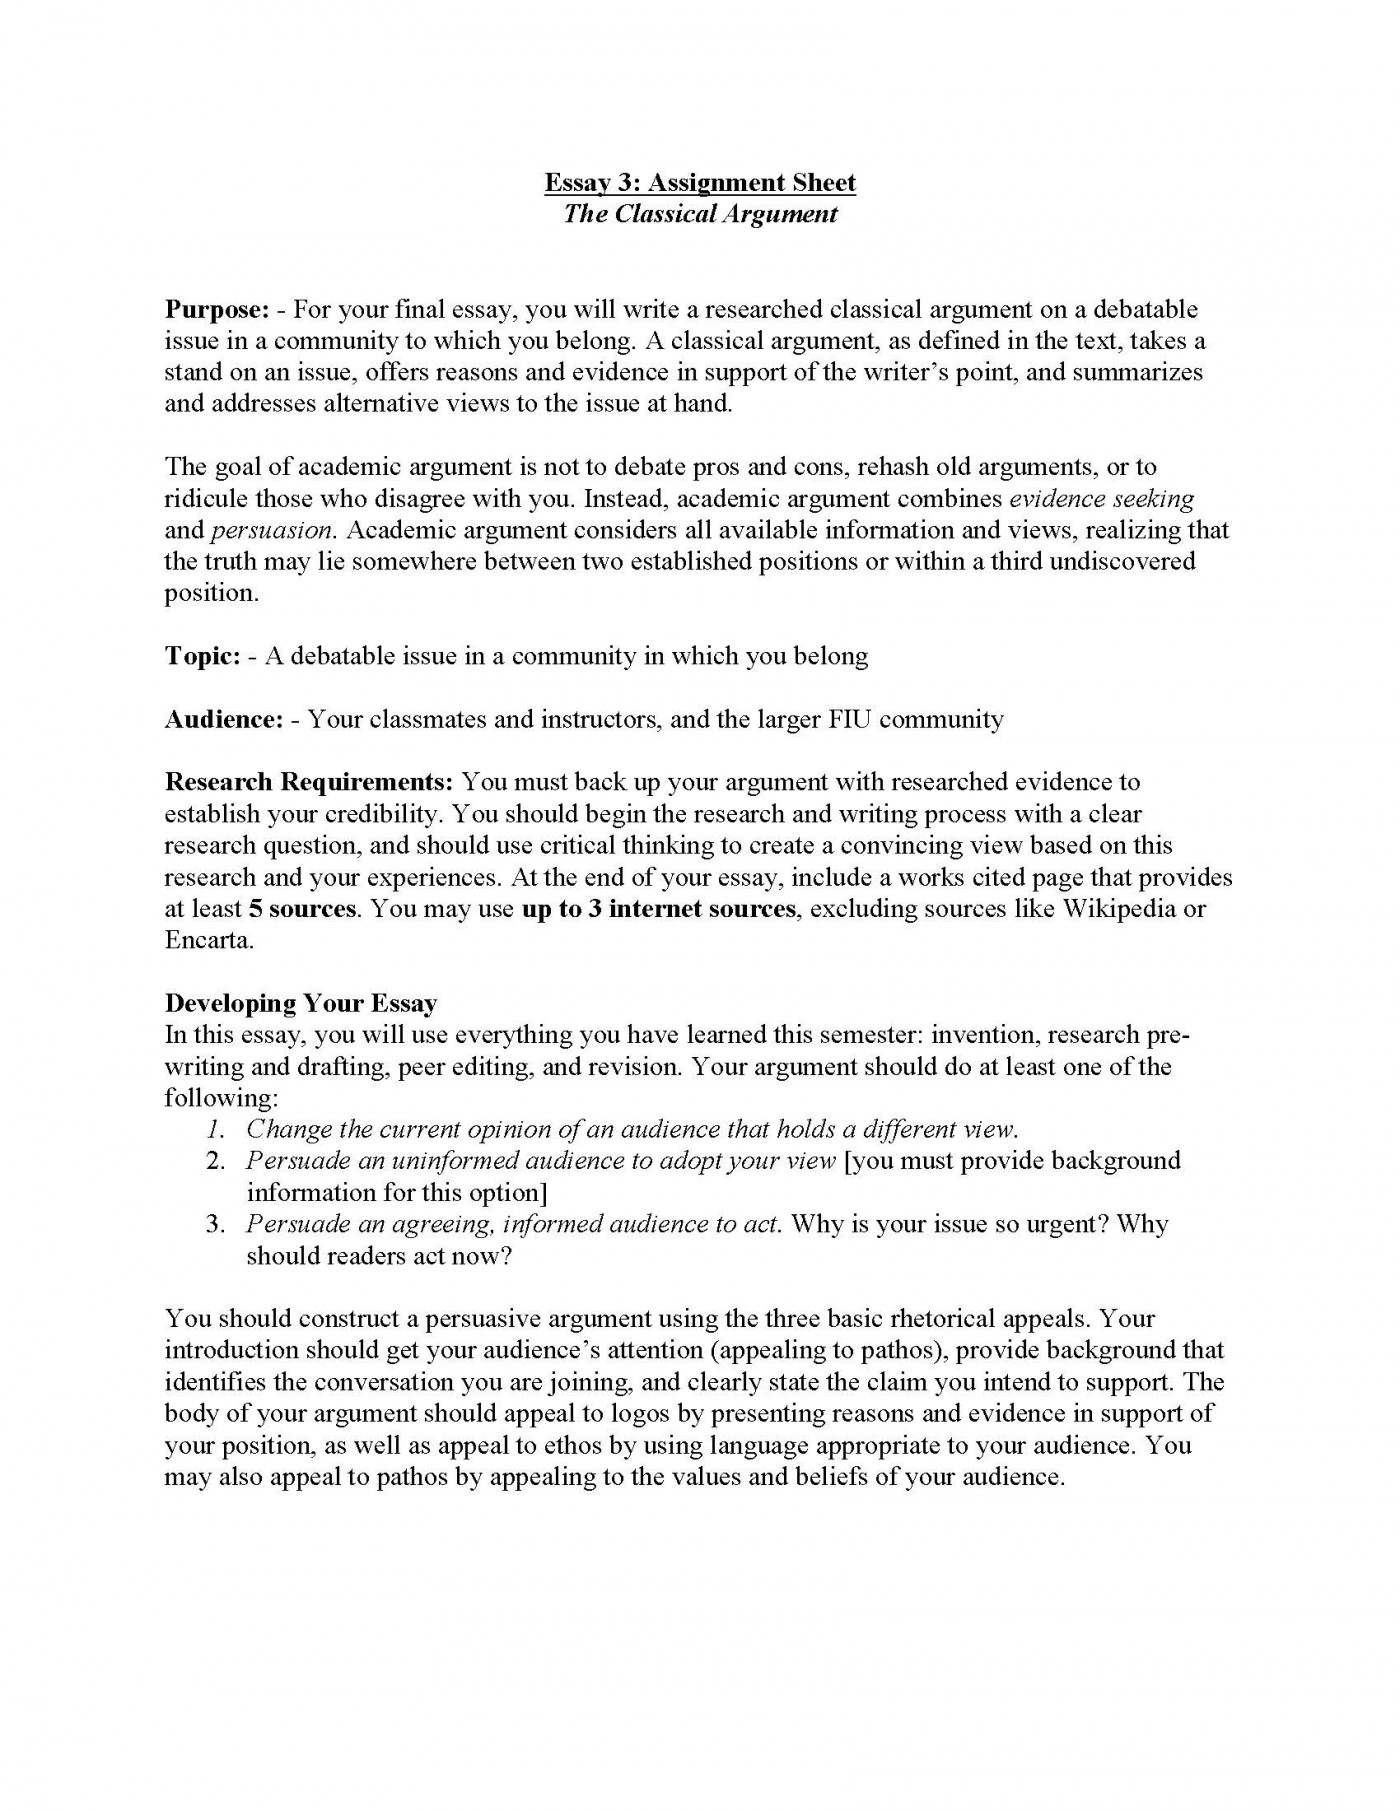 004 Essay Example Classical Argument Unit Assignment Page 1 About My Archaicawful Life As A Student Experience Of University And Peer Pressure 1400